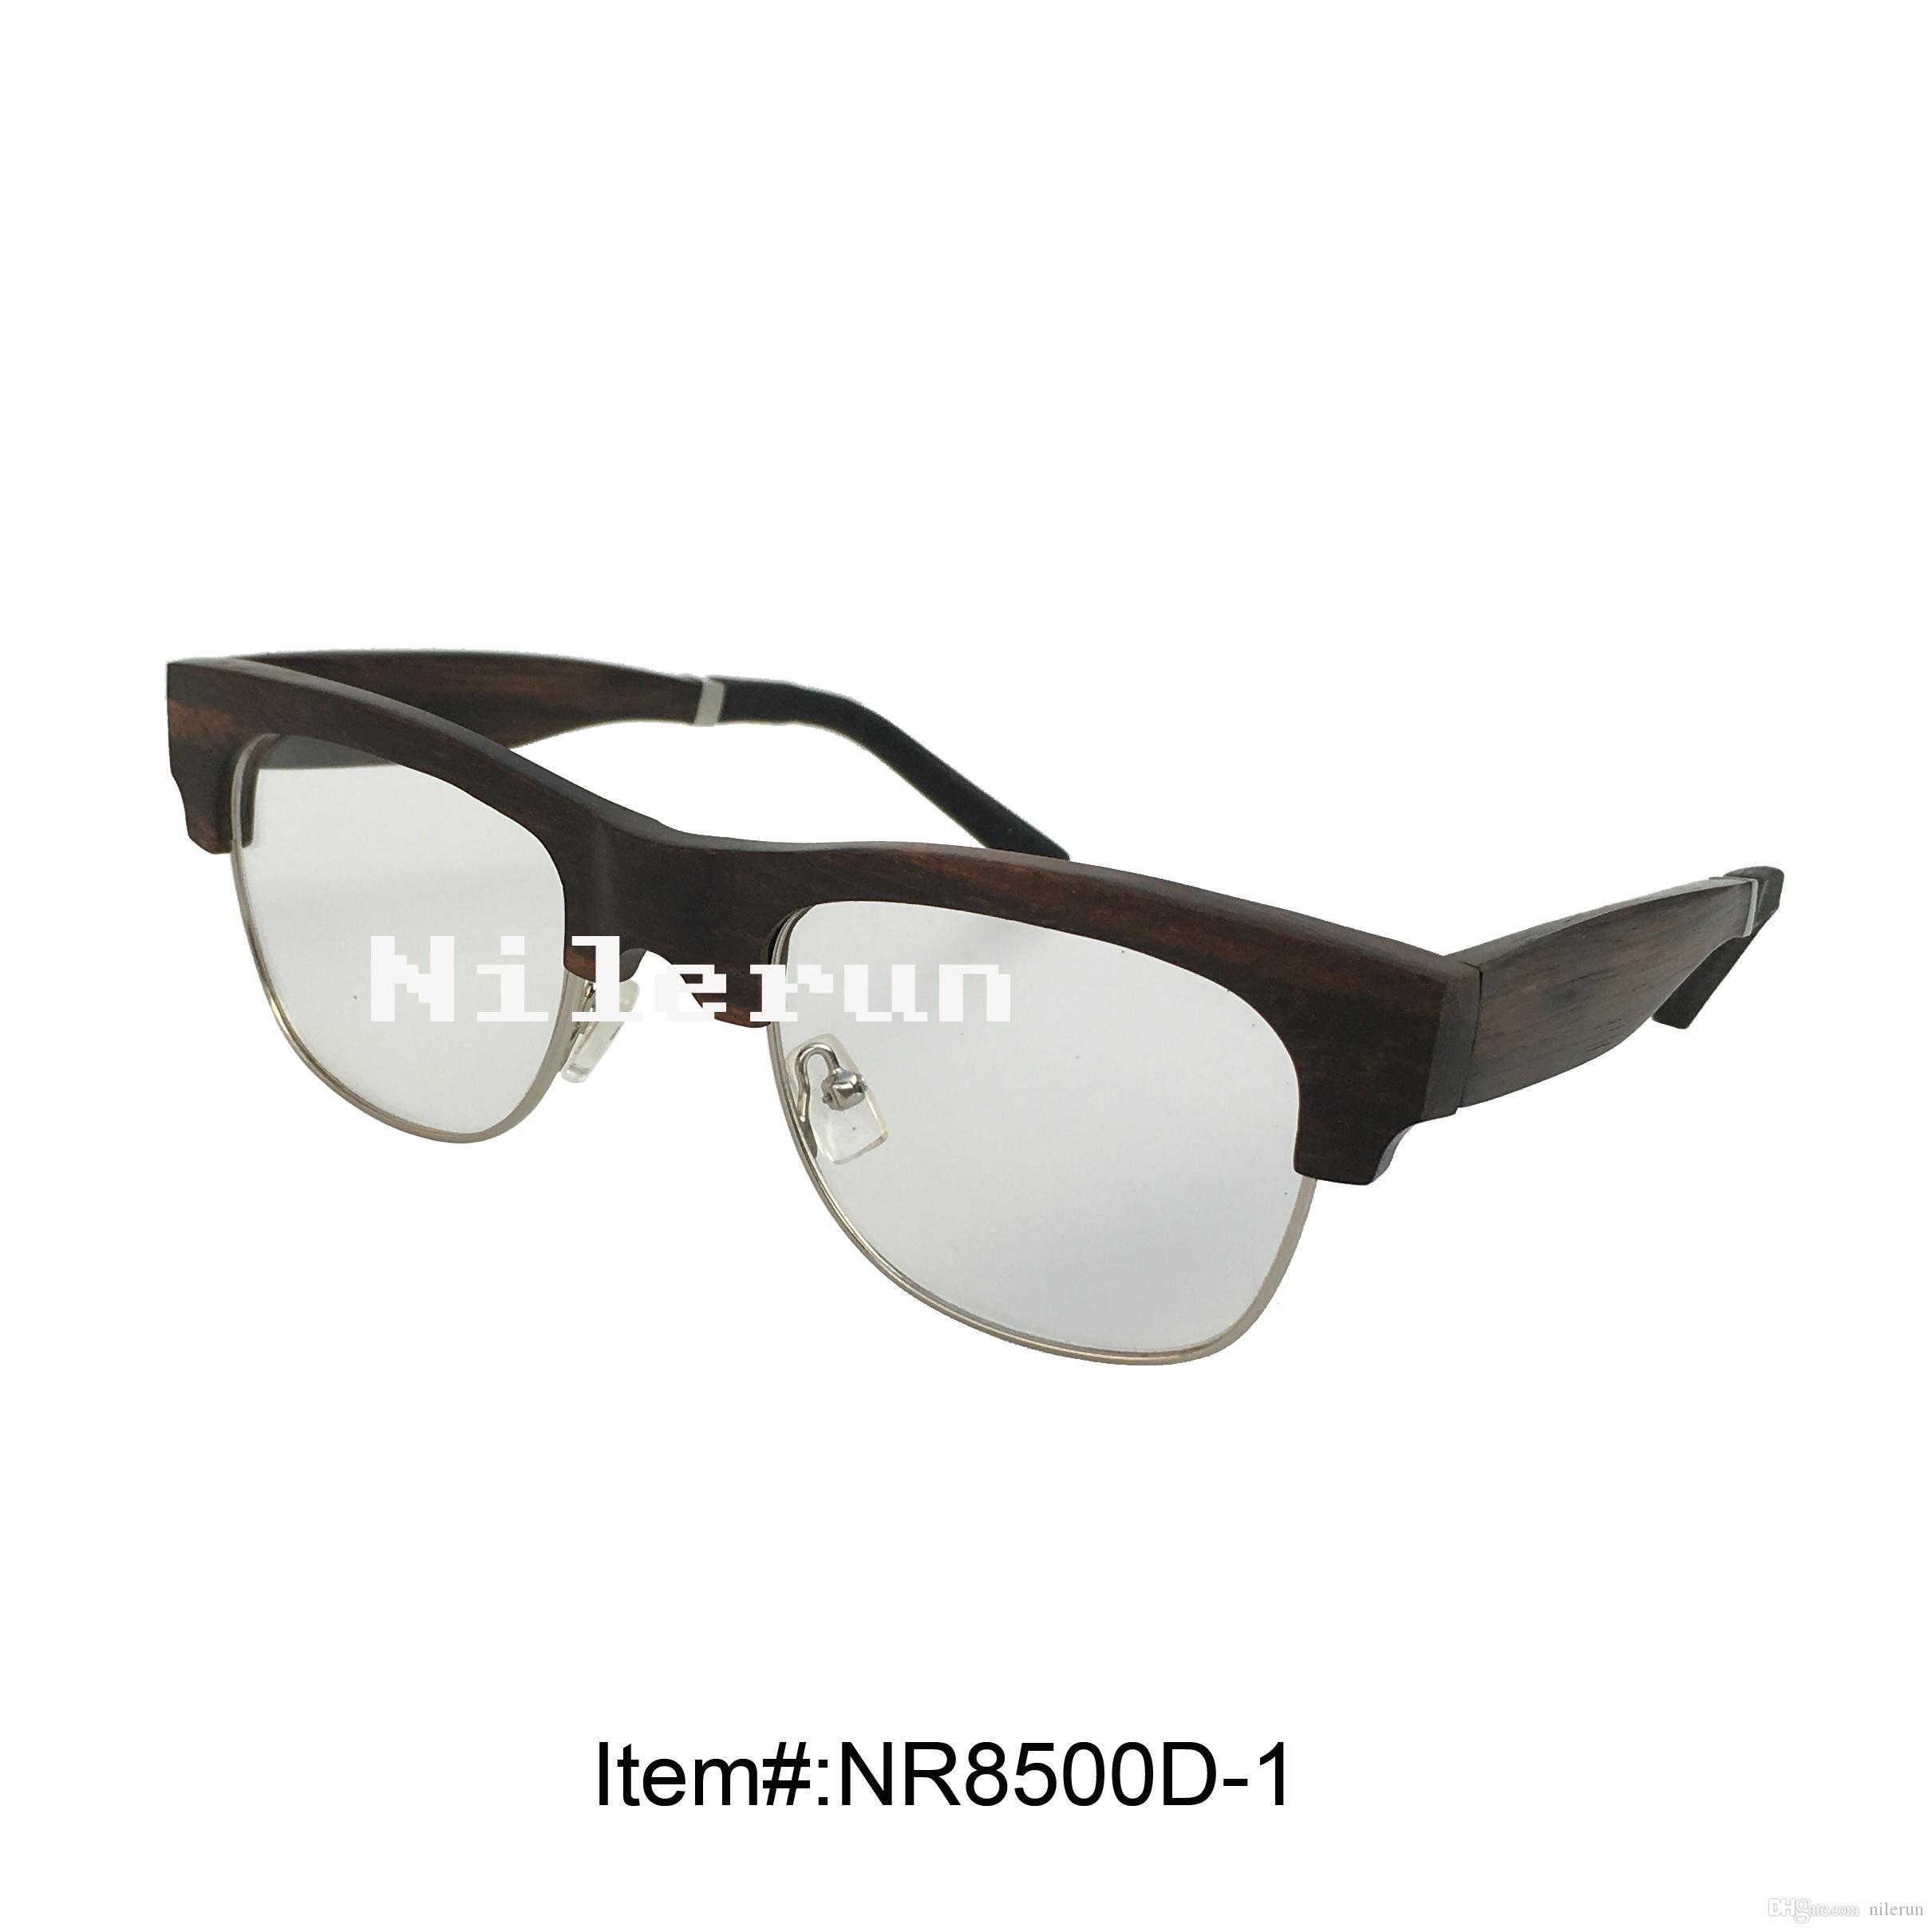 32d56d1d59 Metal Ebony Wood Optical Reading Glasses Metal Wood Glasses Metal Wood  Eyewear Metal Wood Eyeglasses Online with  63.48 Piece on Nilerun s Store